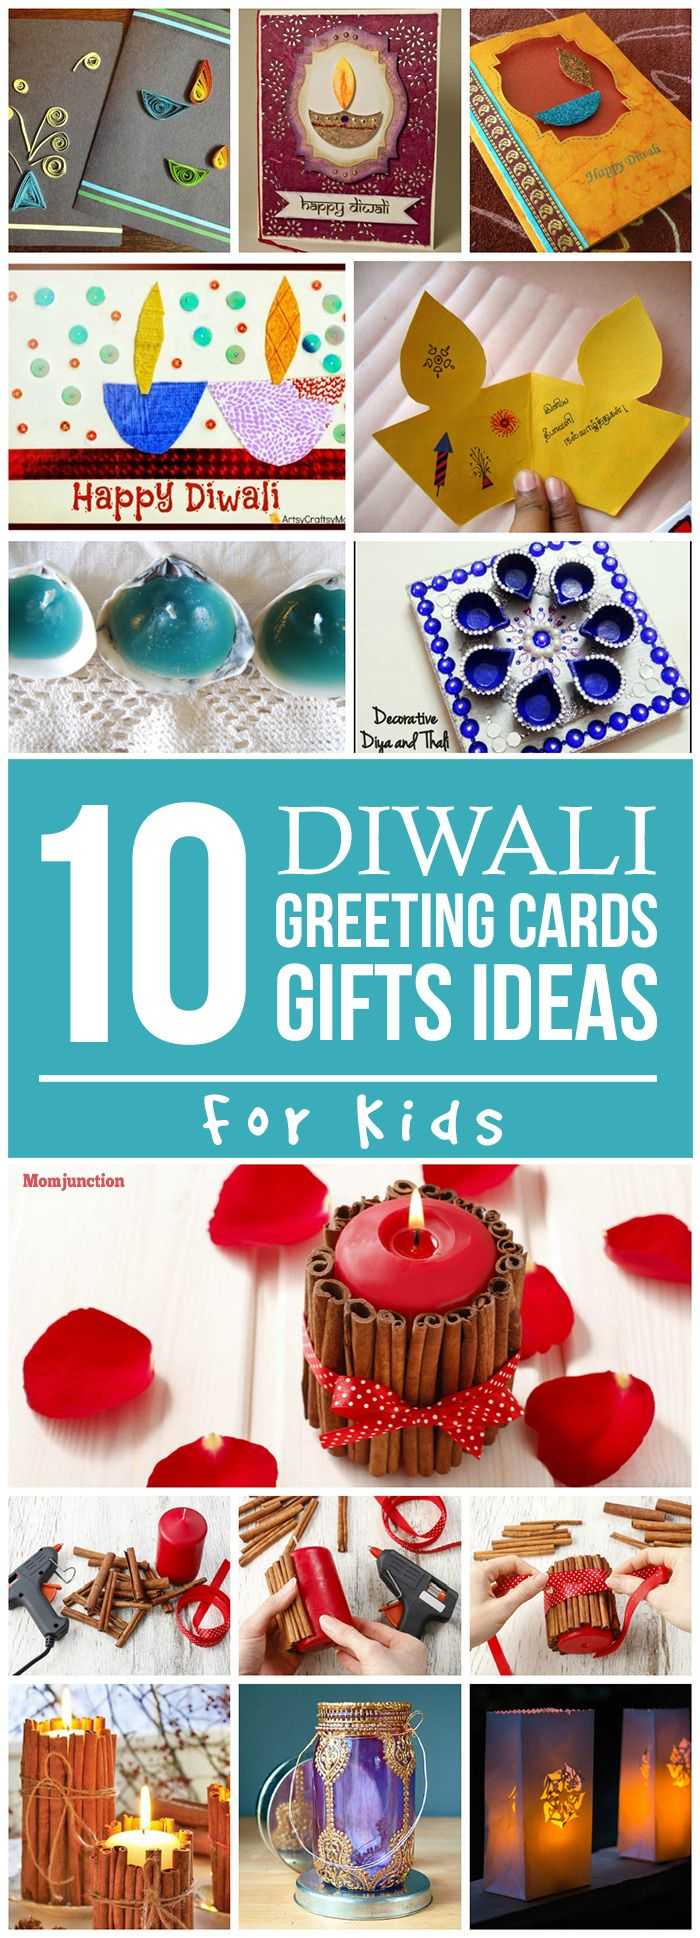 Are you looking for ideas on making diwali greeting cards for kids to send or handmade gifts to make? read this post and make this Diwali more memorable.